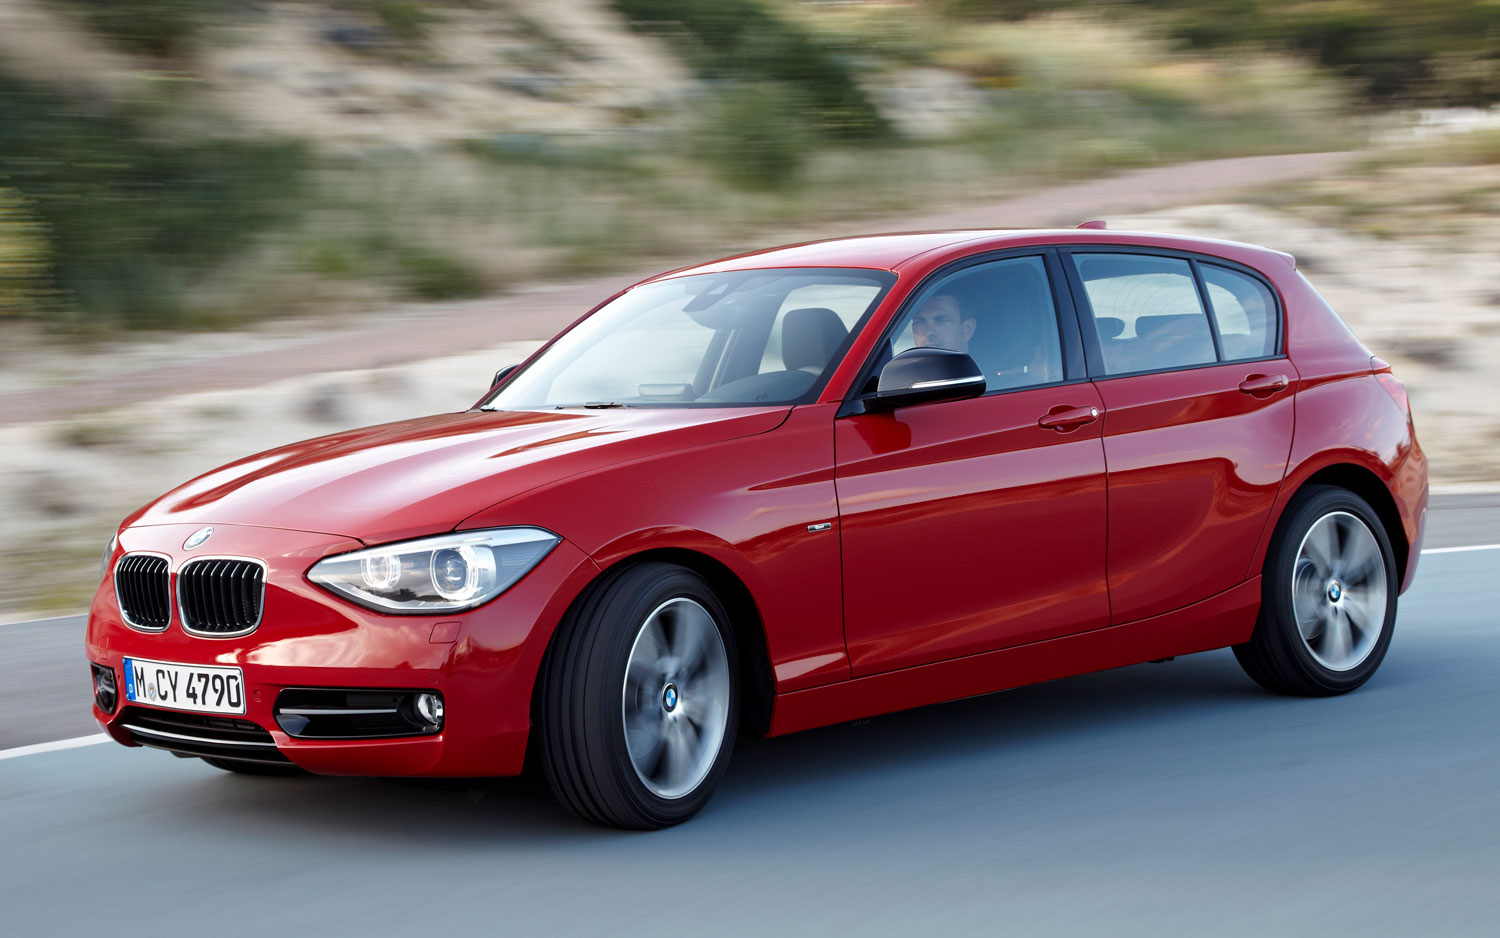 bmw announces 2012 1 series hatchback for europe. Black Bedroom Furniture Sets. Home Design Ideas